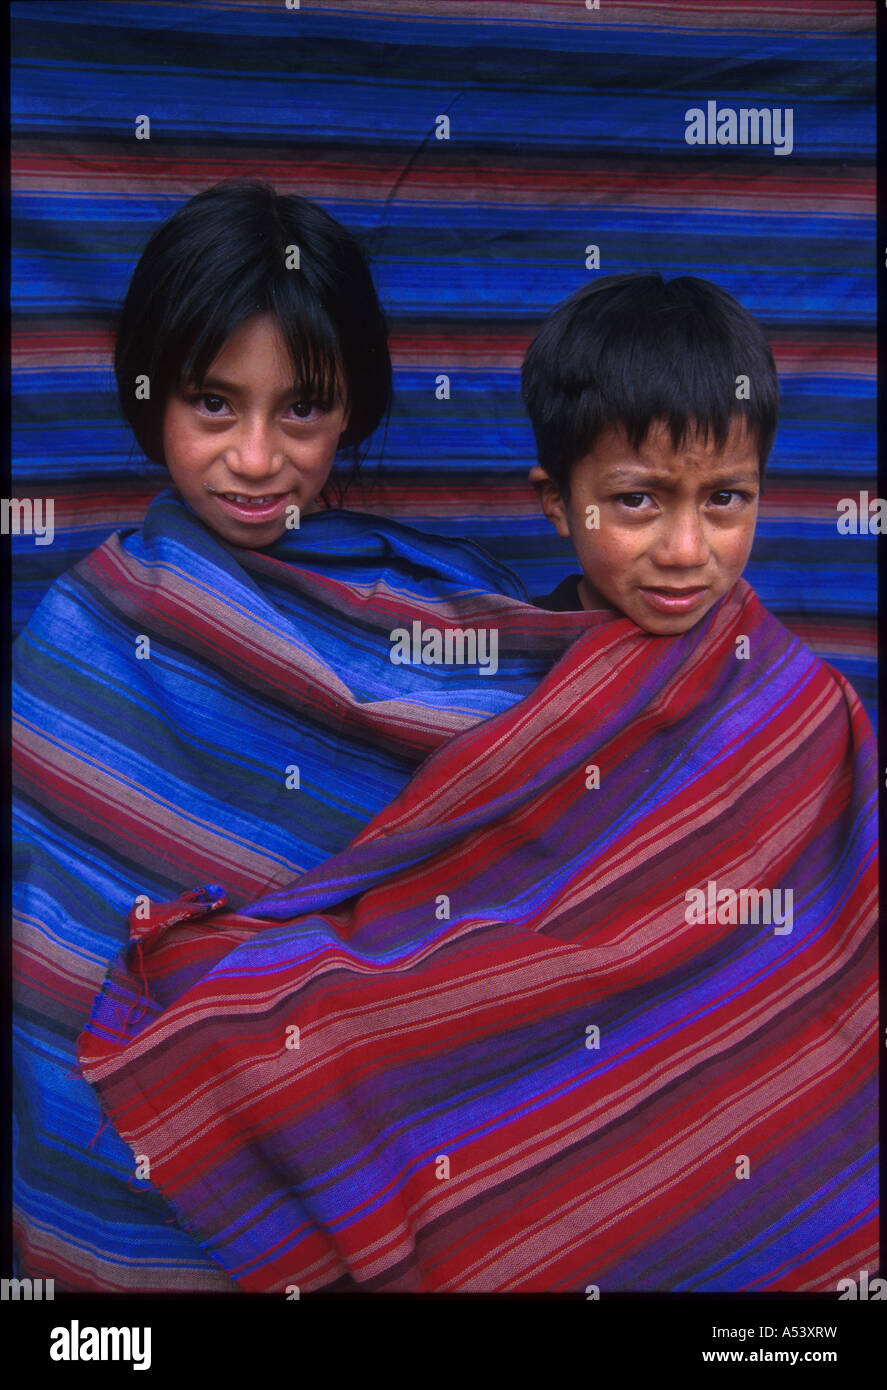 Painet ha2292 5114 guatemala children brother sister wearing cloth woven by father country developing nation less - Stock Image